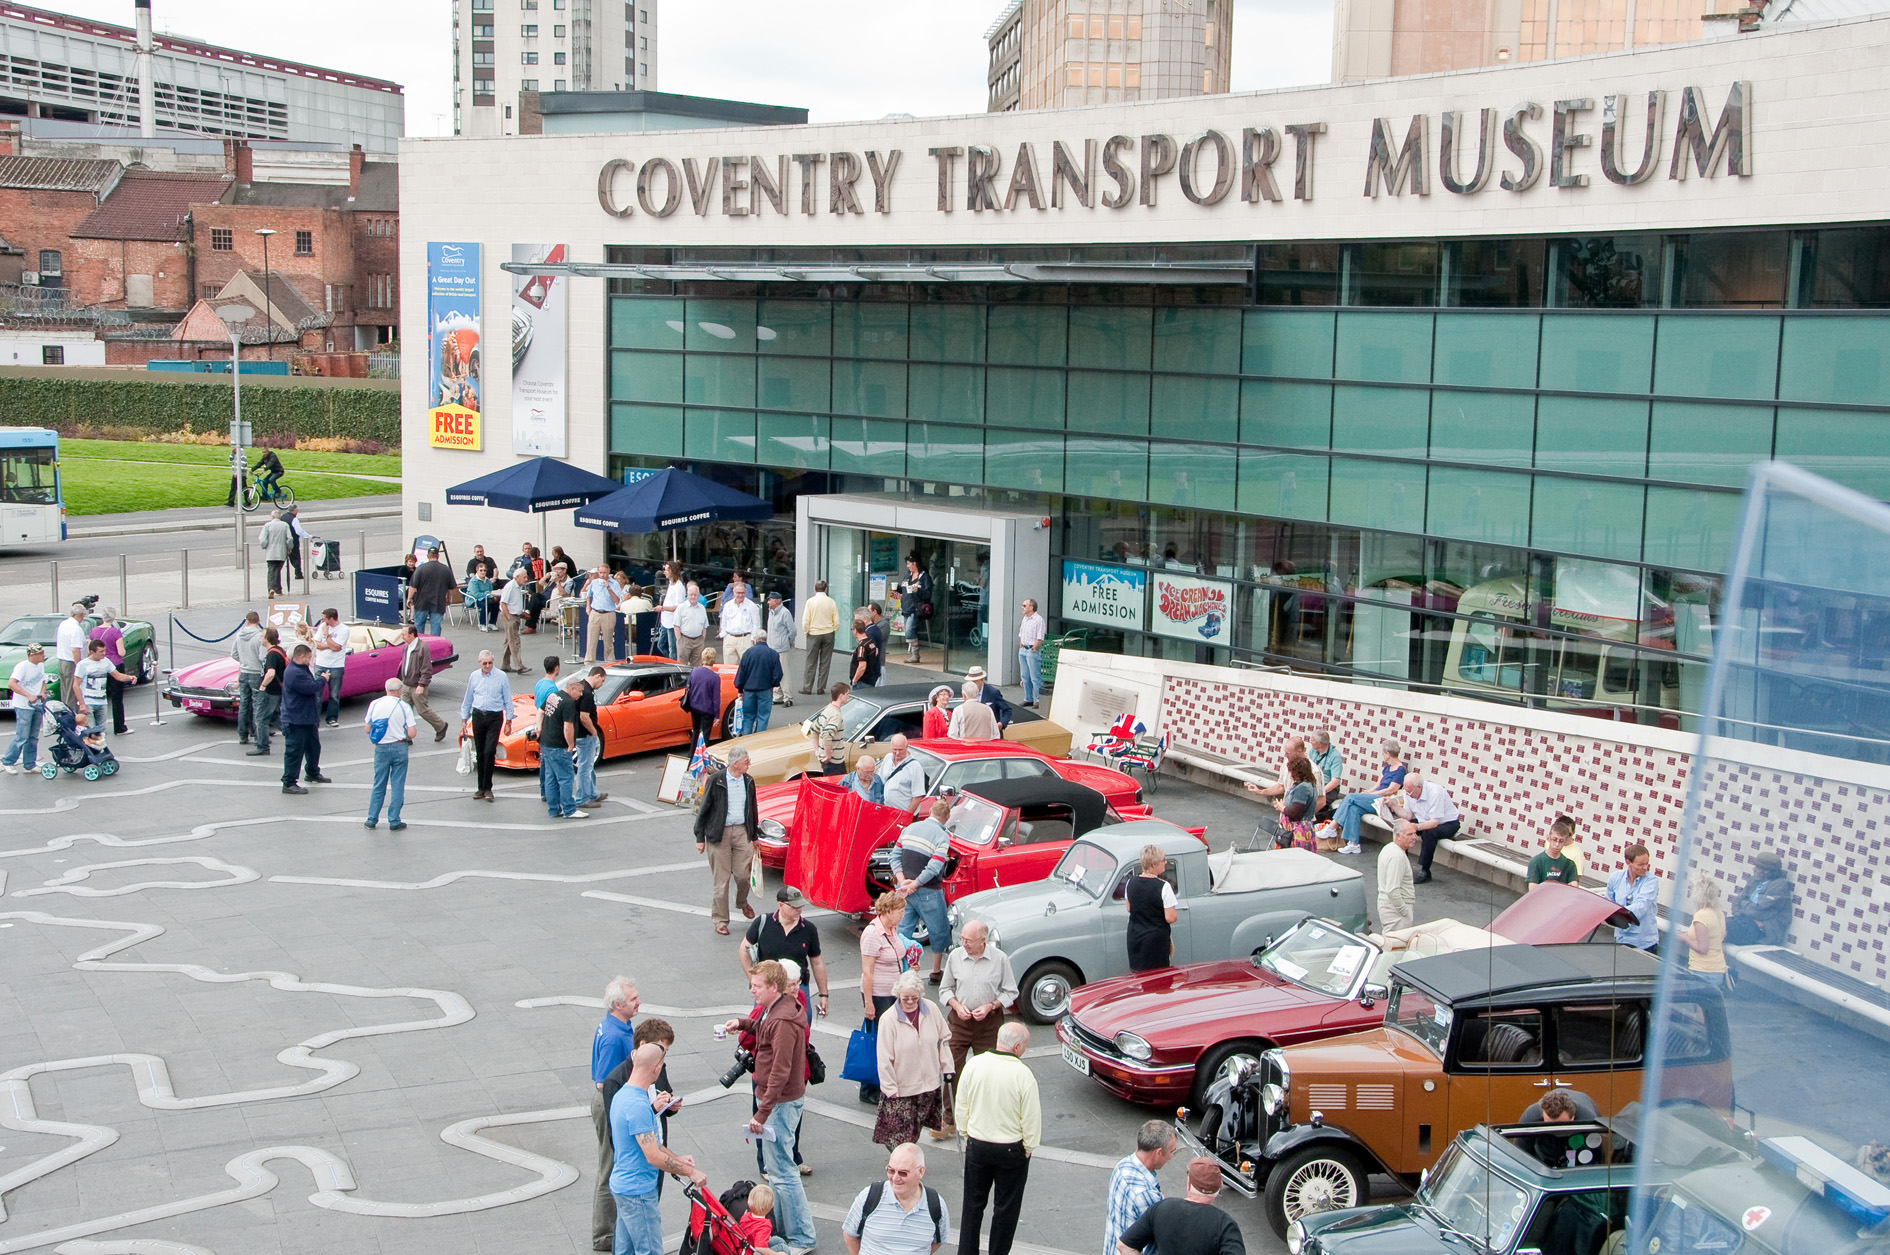 About Coventry Transport Museum